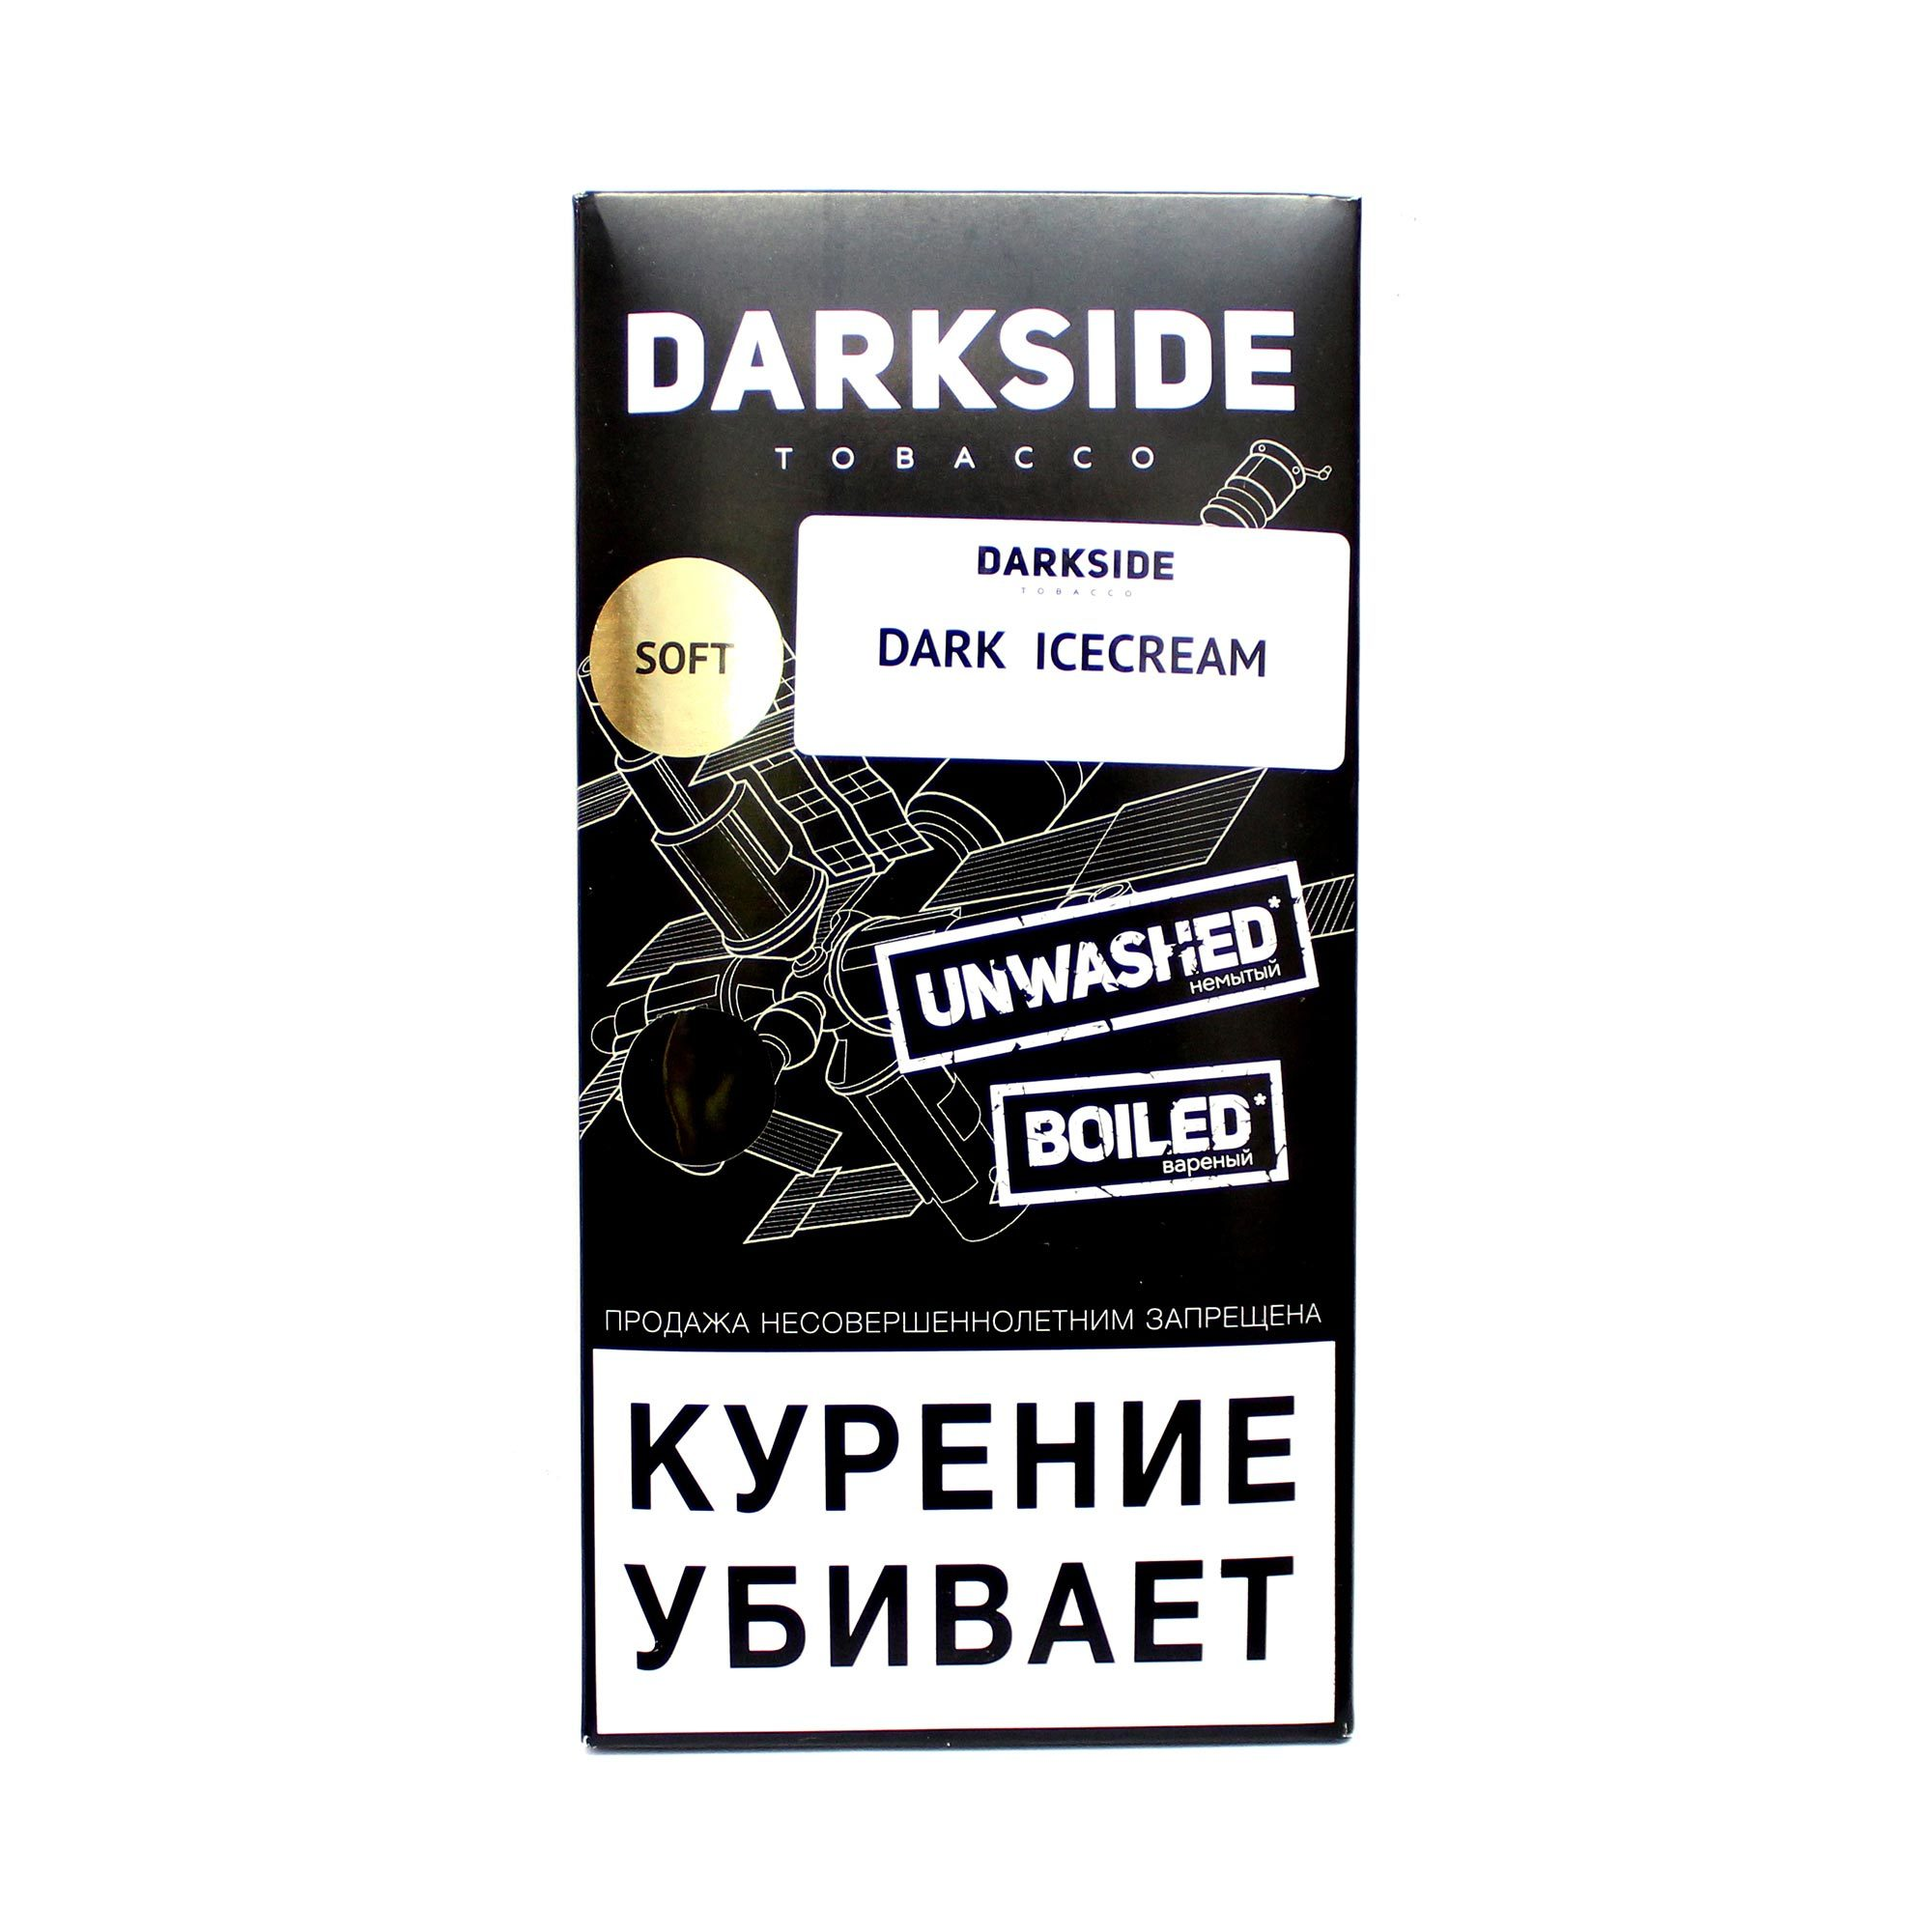 Табак для кальяна Dark Side Soft 250 гр.Dark Icecream